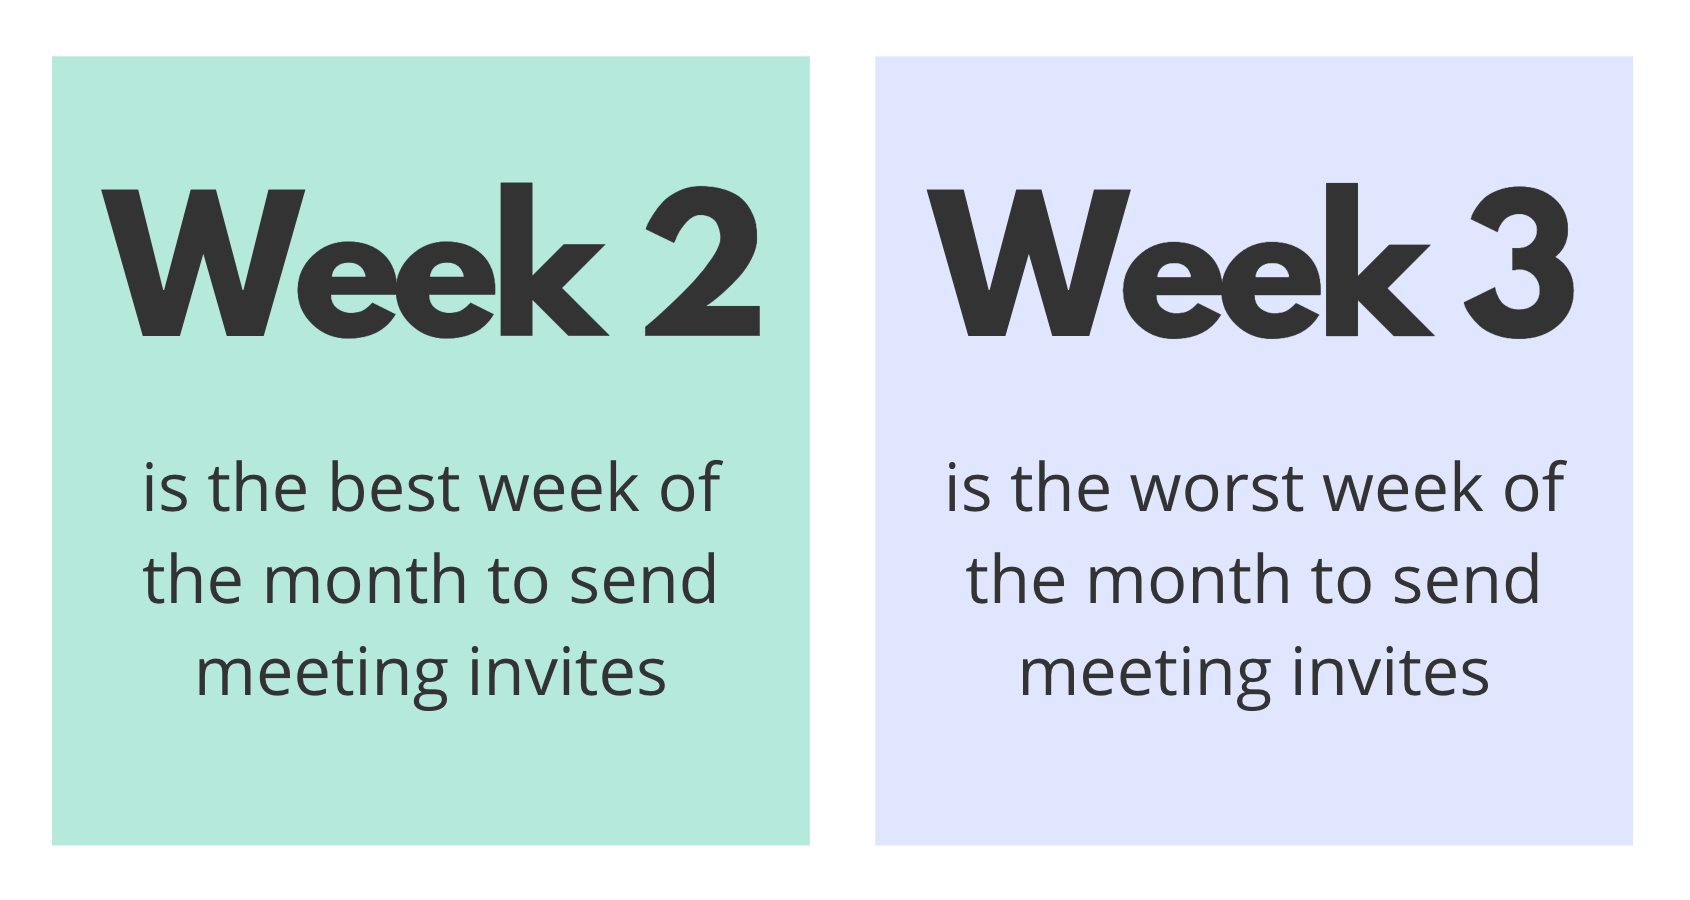 the best and worst week to send meeting invites